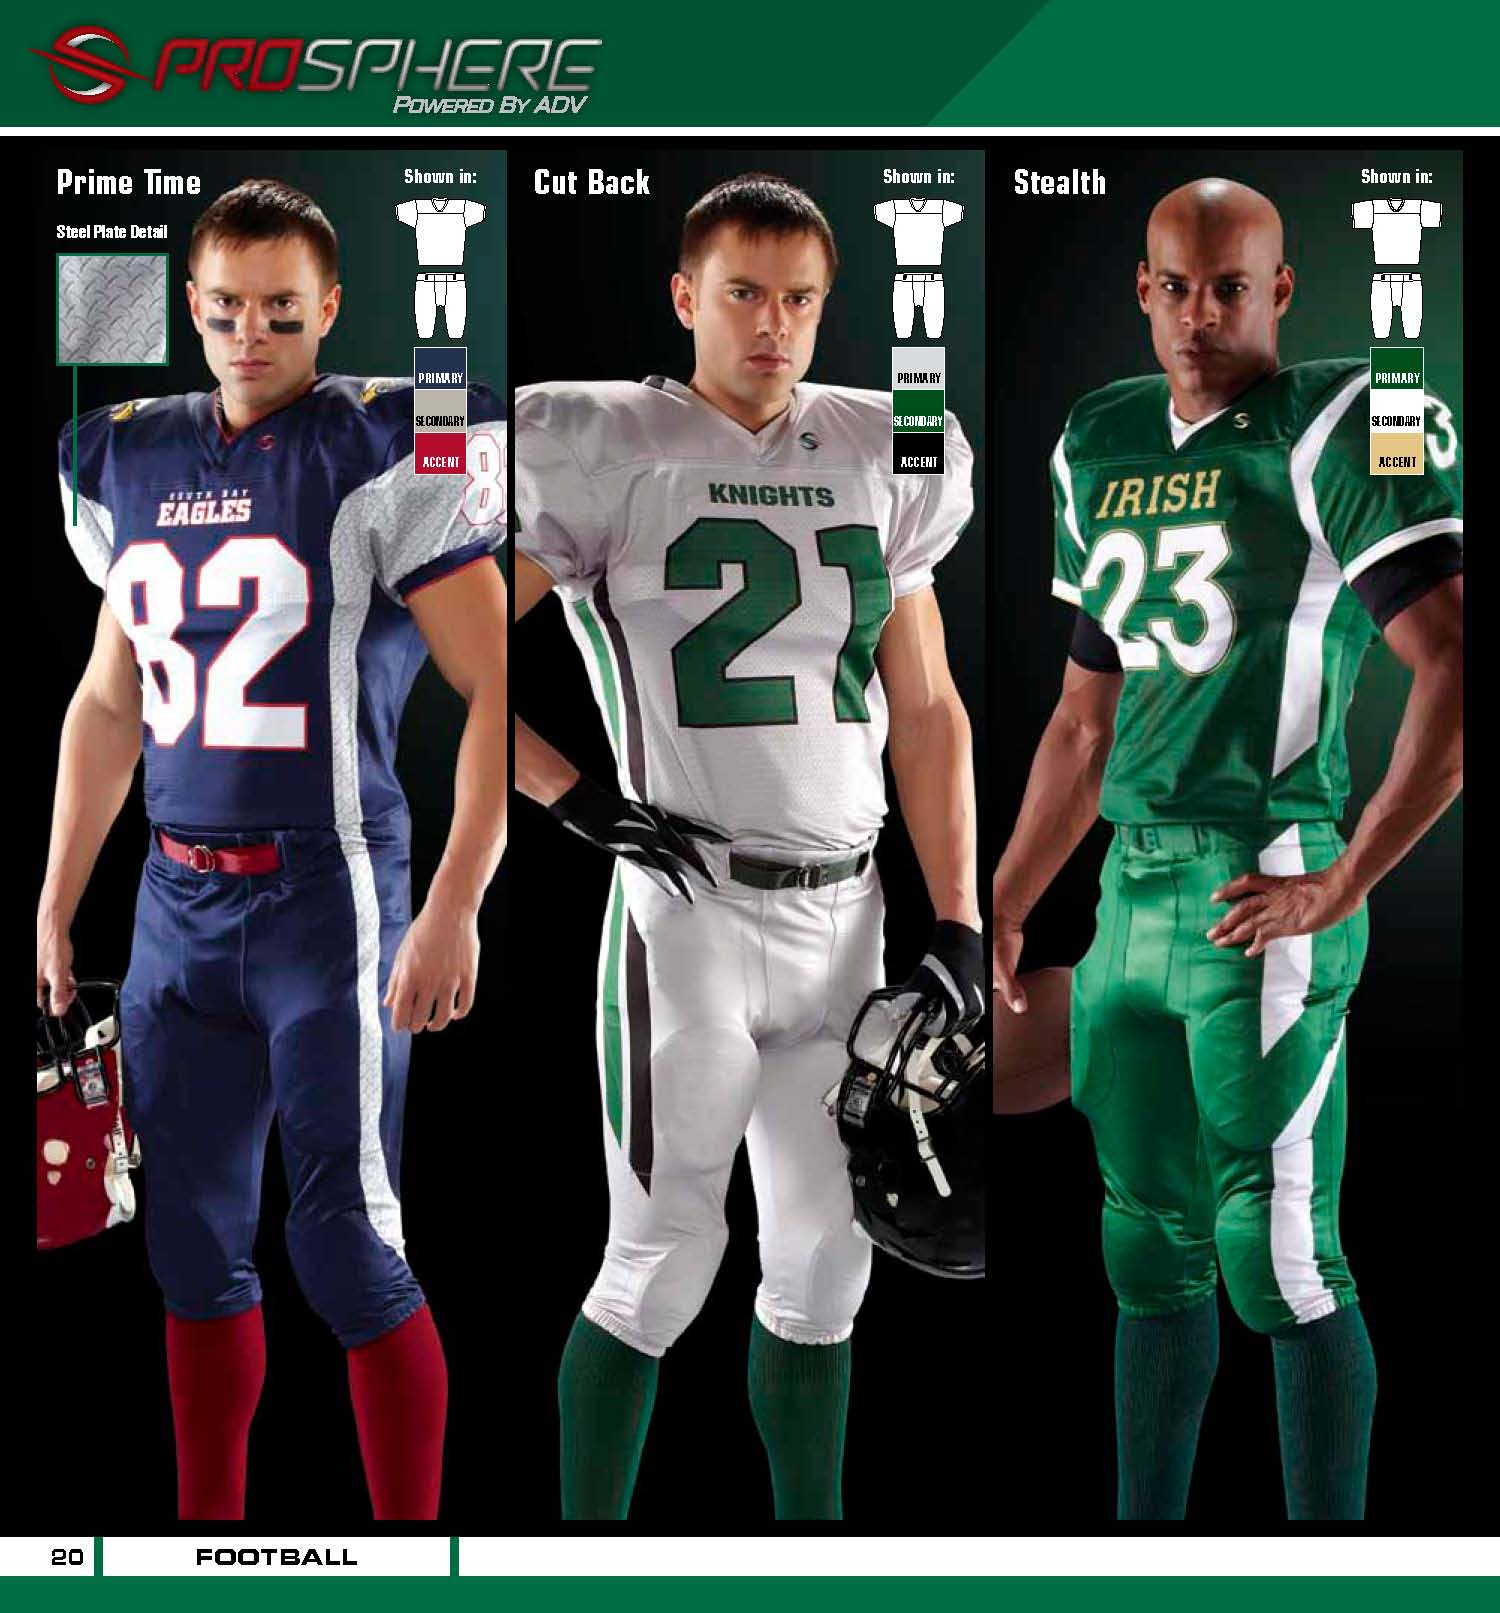 4e4641e40ab Get Custom Football Jerseys For Your Team- Let Your Passion Show. Posted on  September 21, 2015 September 14, 2015 AuthorKelly · custom uniforms